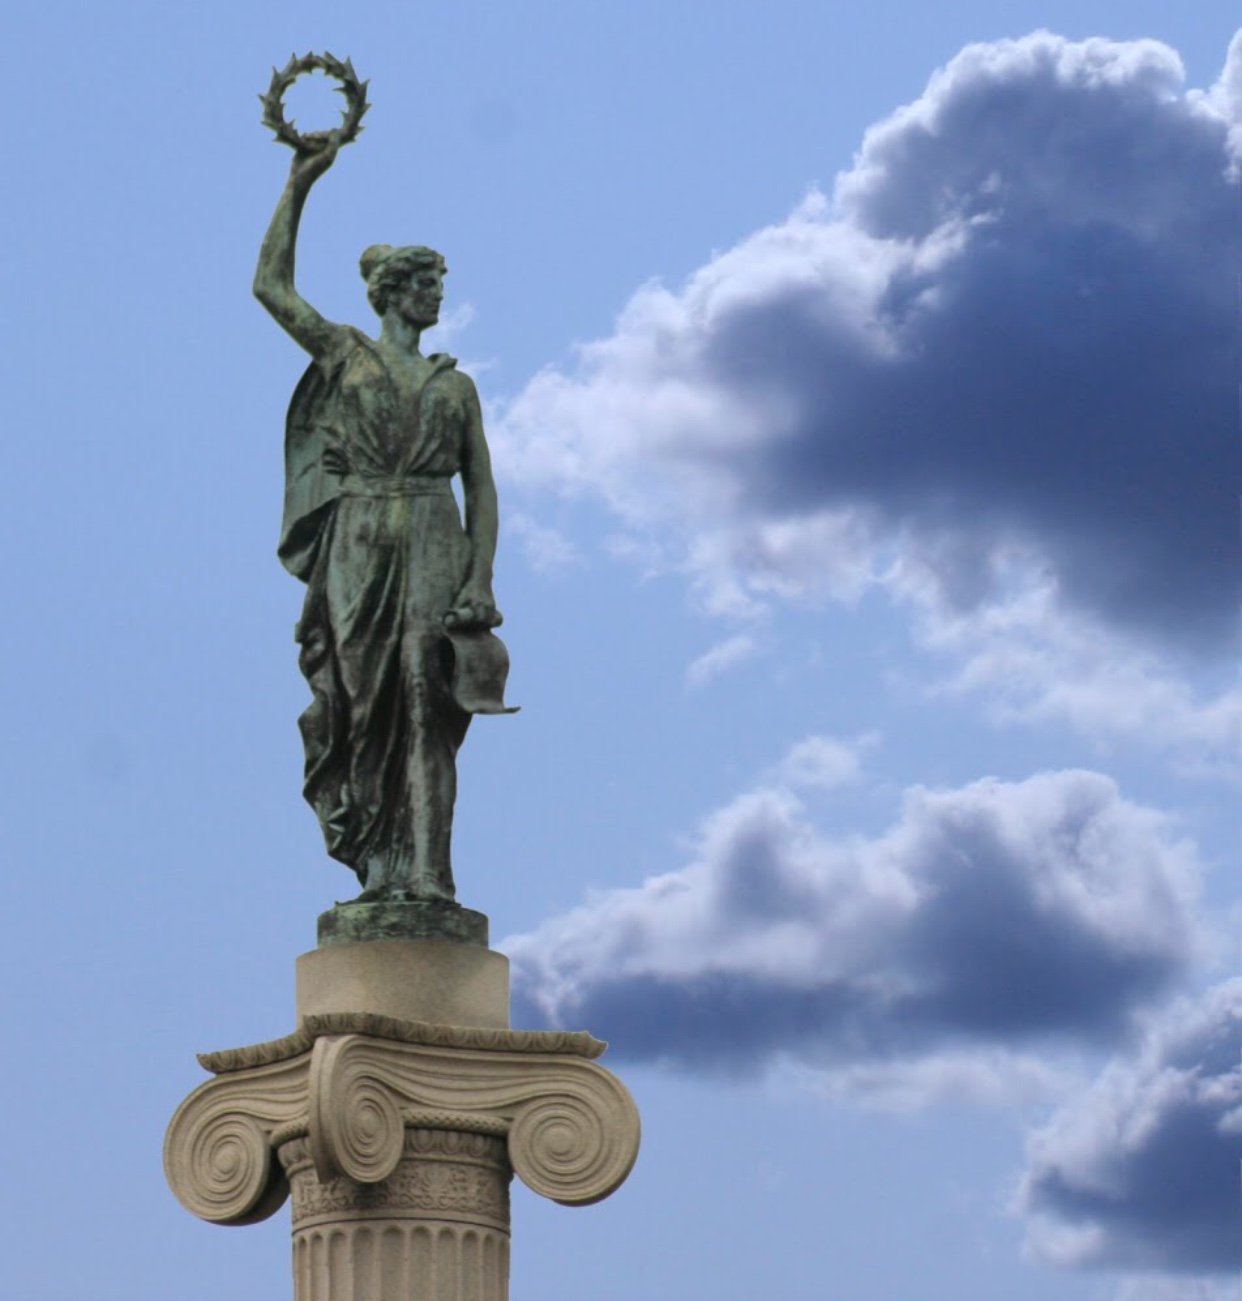 This is a picture of the statue at the top of the monument.